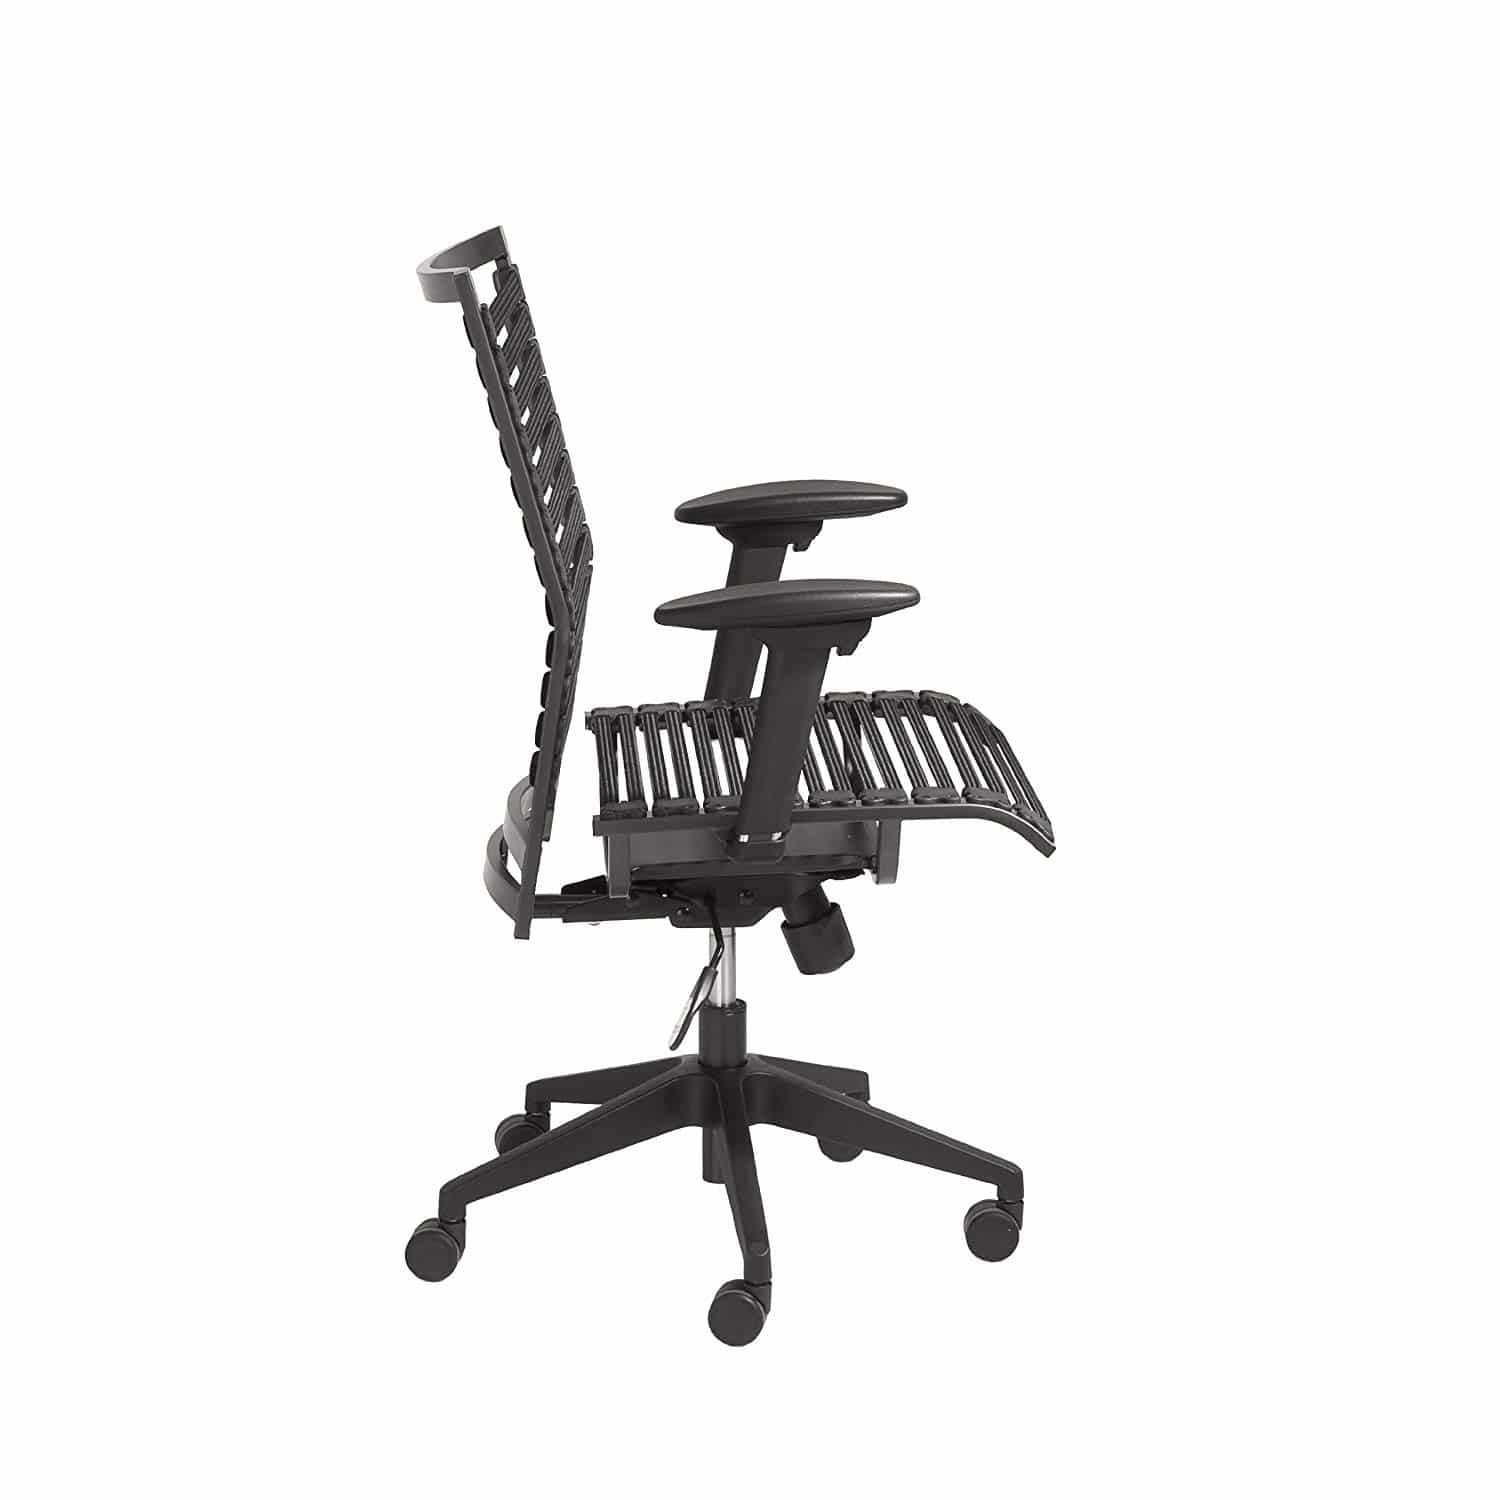 Top 5 Best Bungee Chair Container